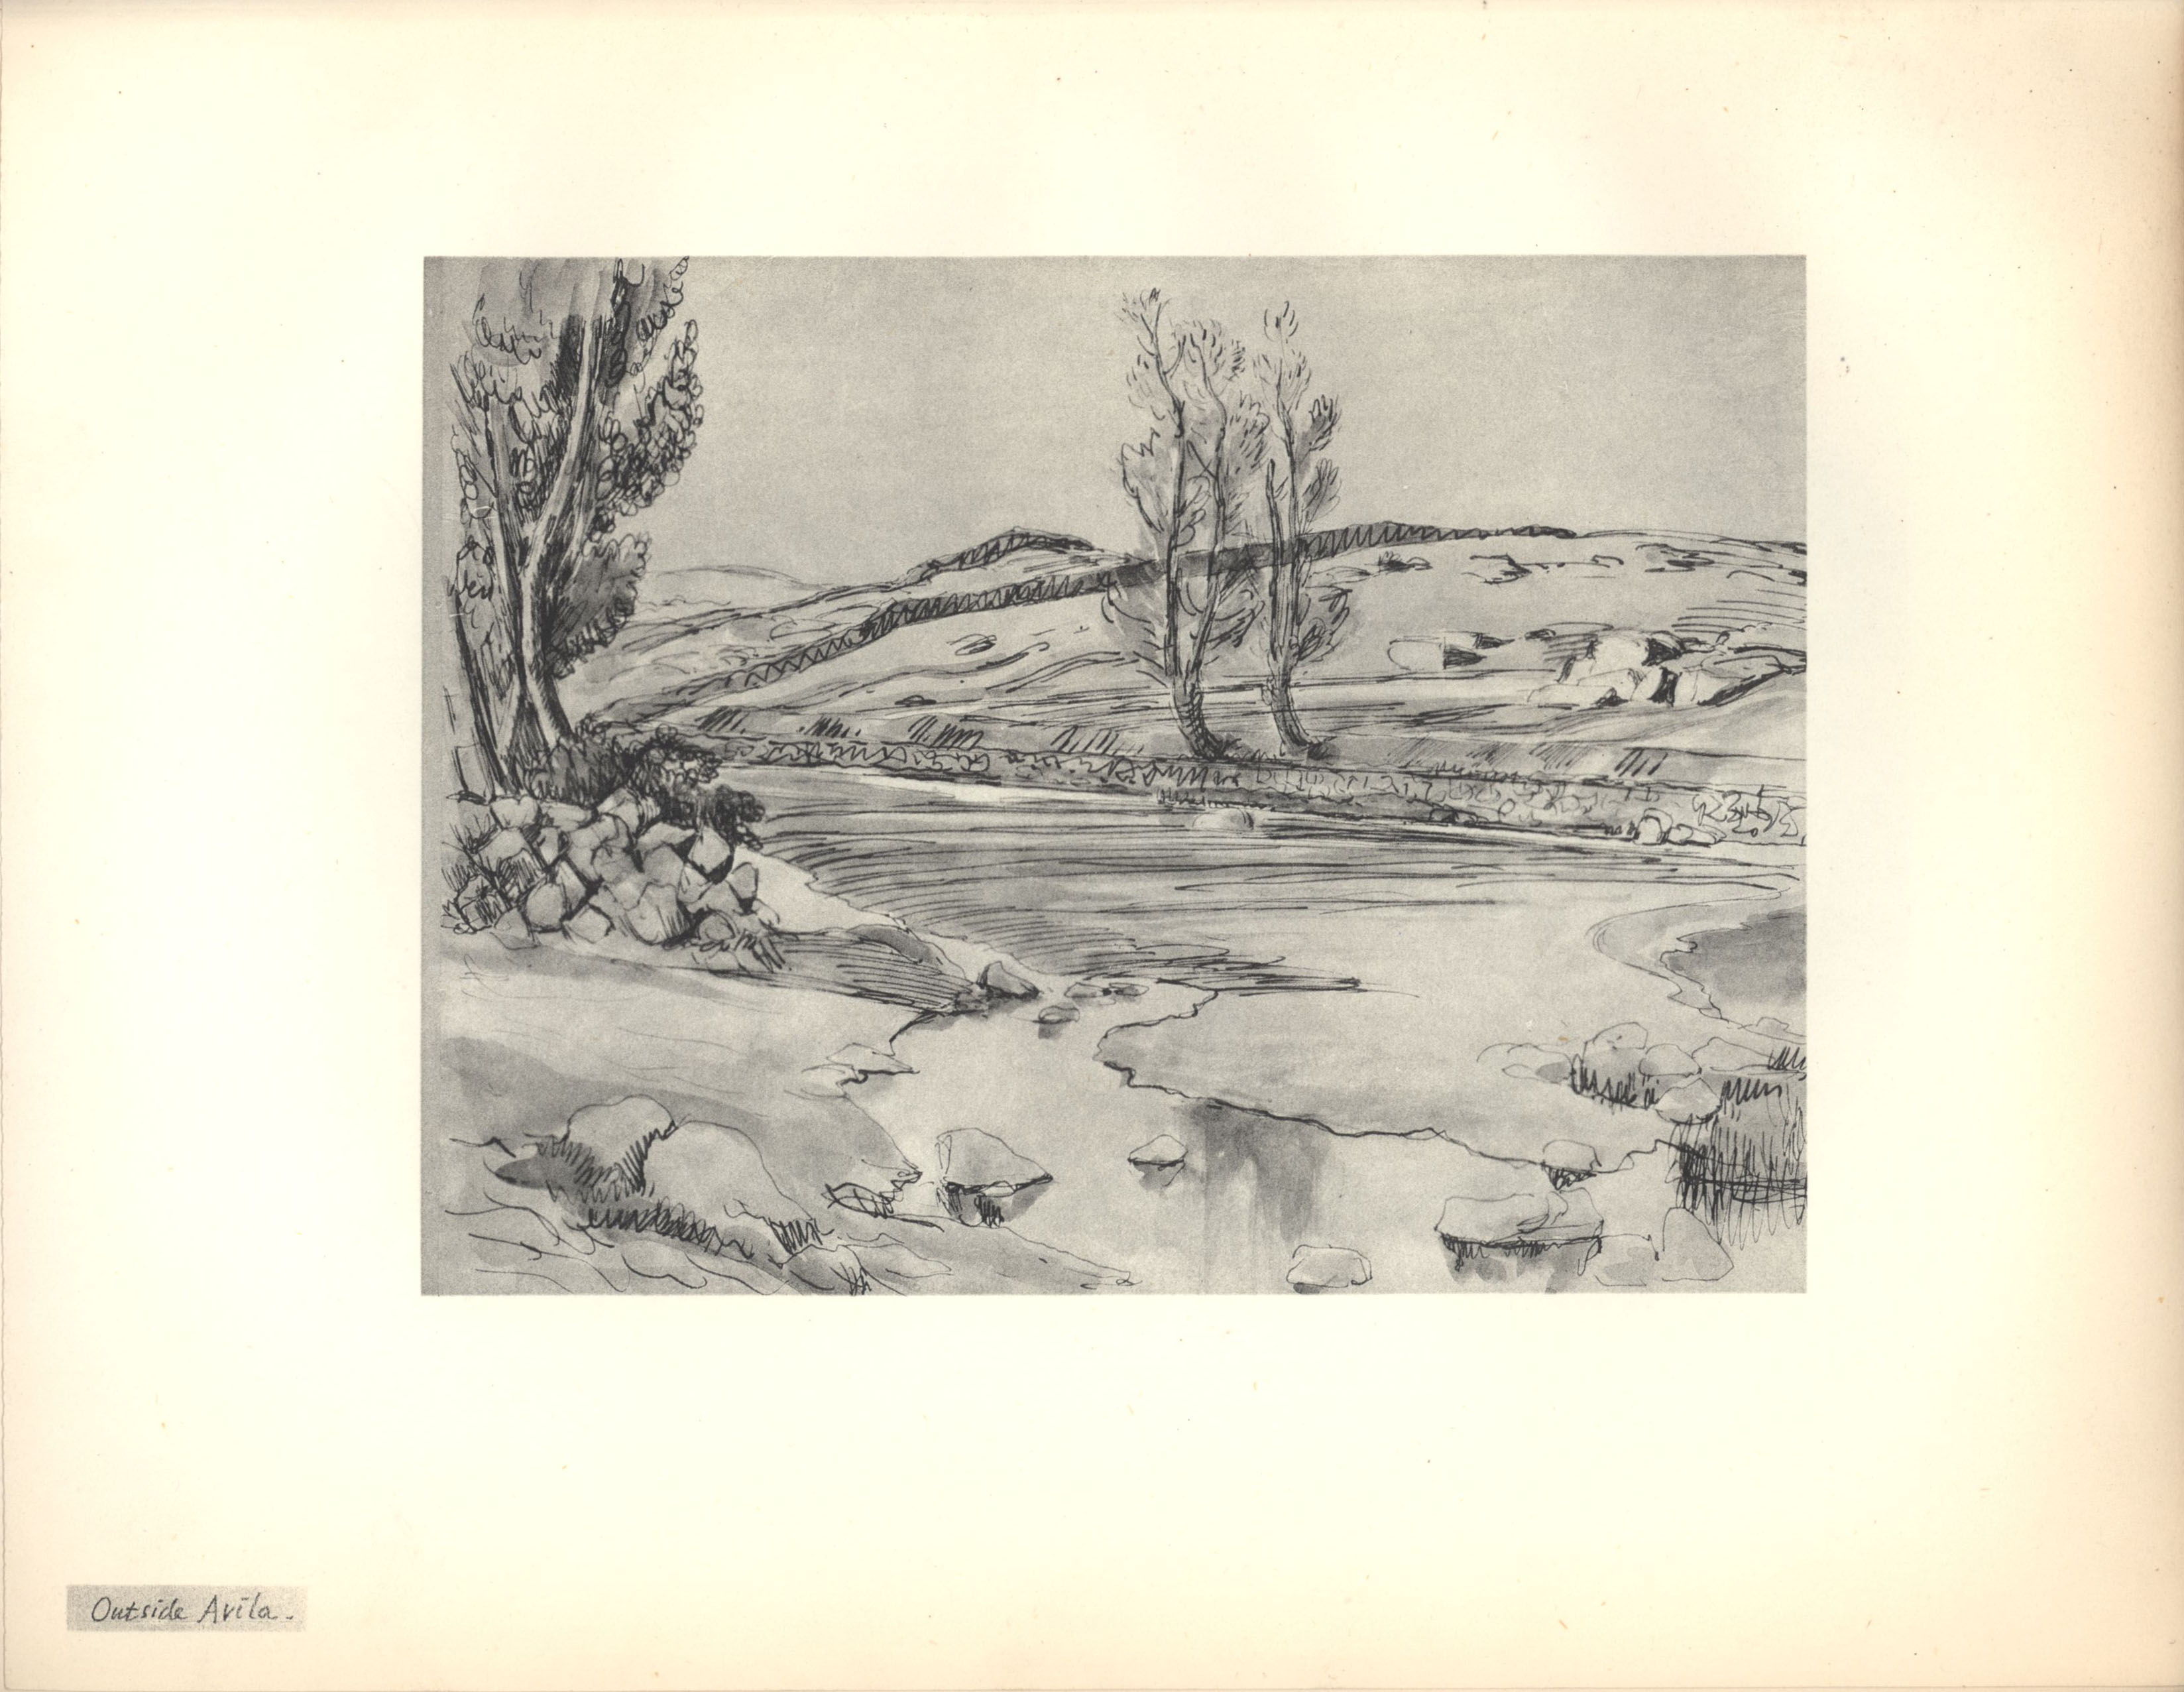 Outside Avila. Sketch from Roger Fry's sketchbook, 1923, used in 'A Sampler of Castile'.